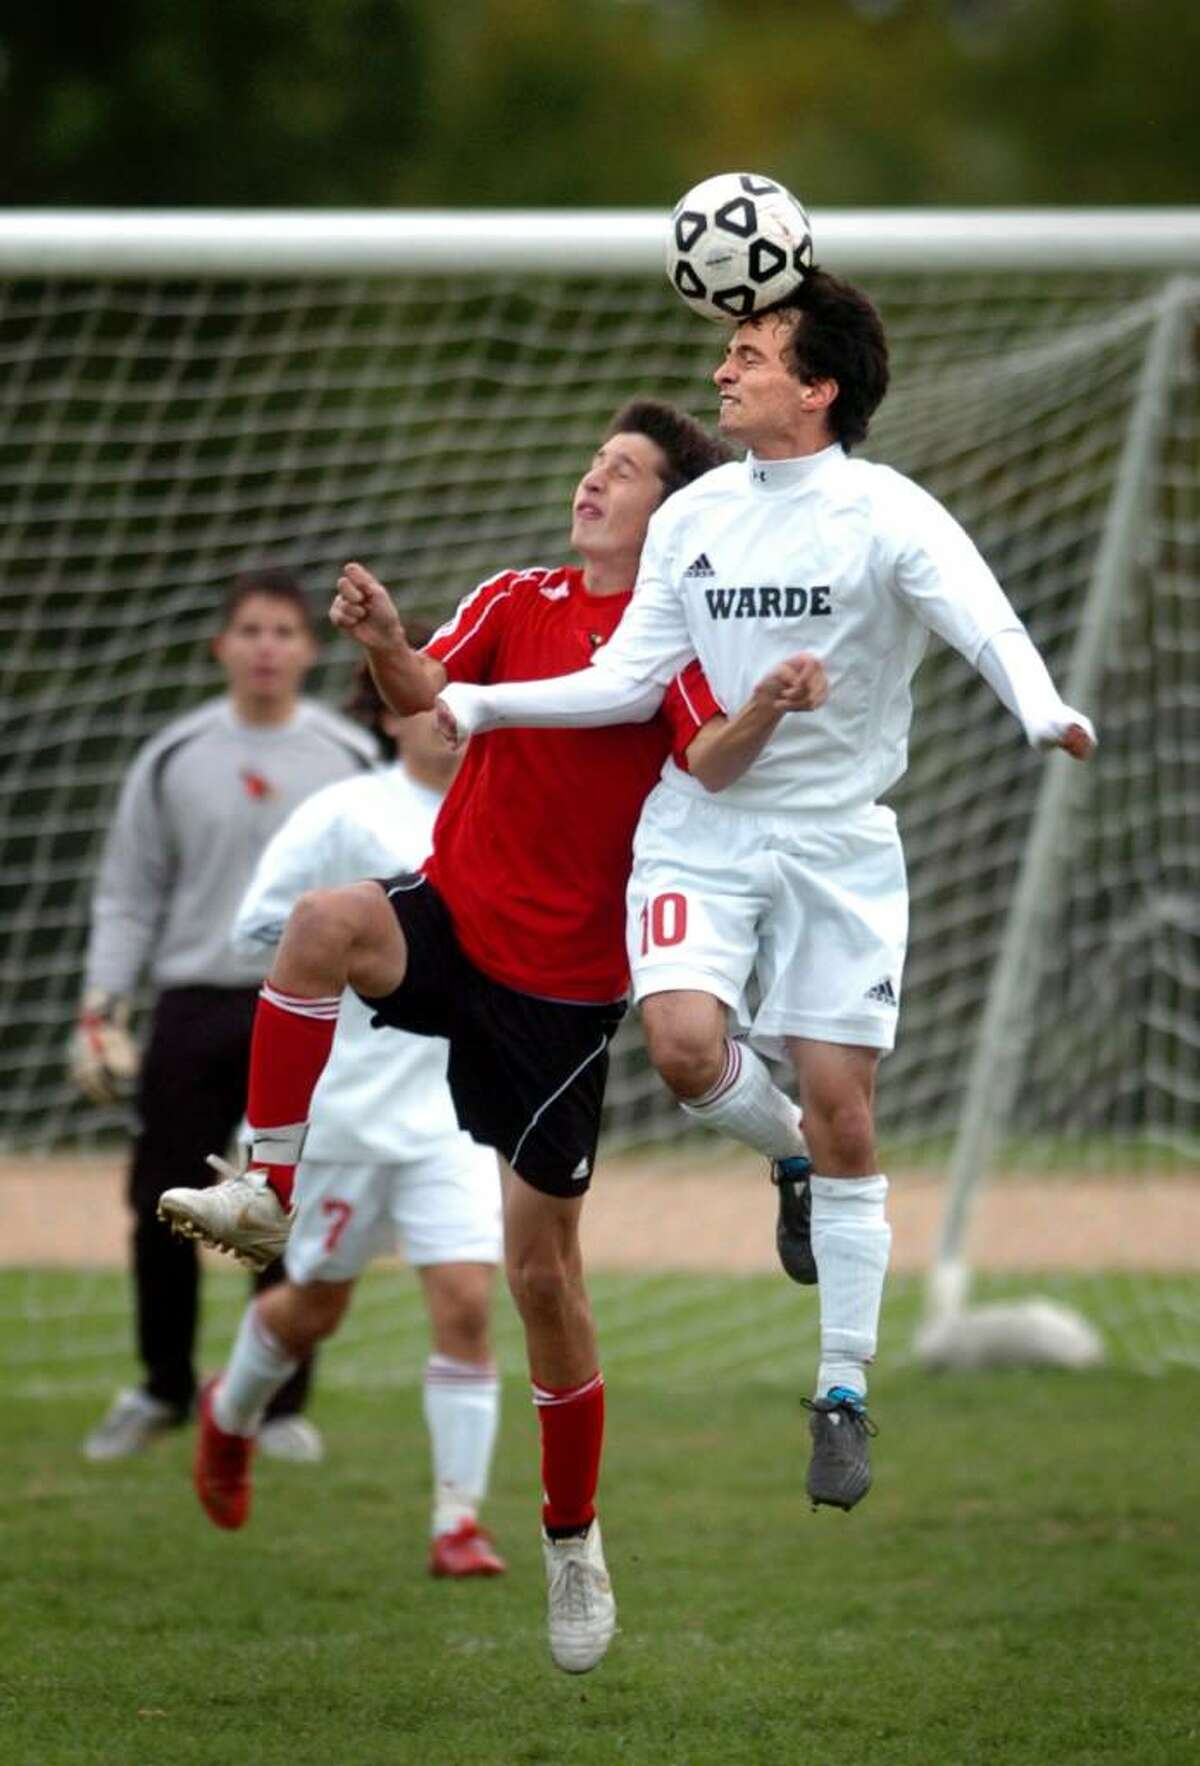 Fairfield Warde's Oliver DeBarros heads the ball as Greenwich defender Tomas Agrest also goes up for the ball during the second half of Wednesday's match at Warde.